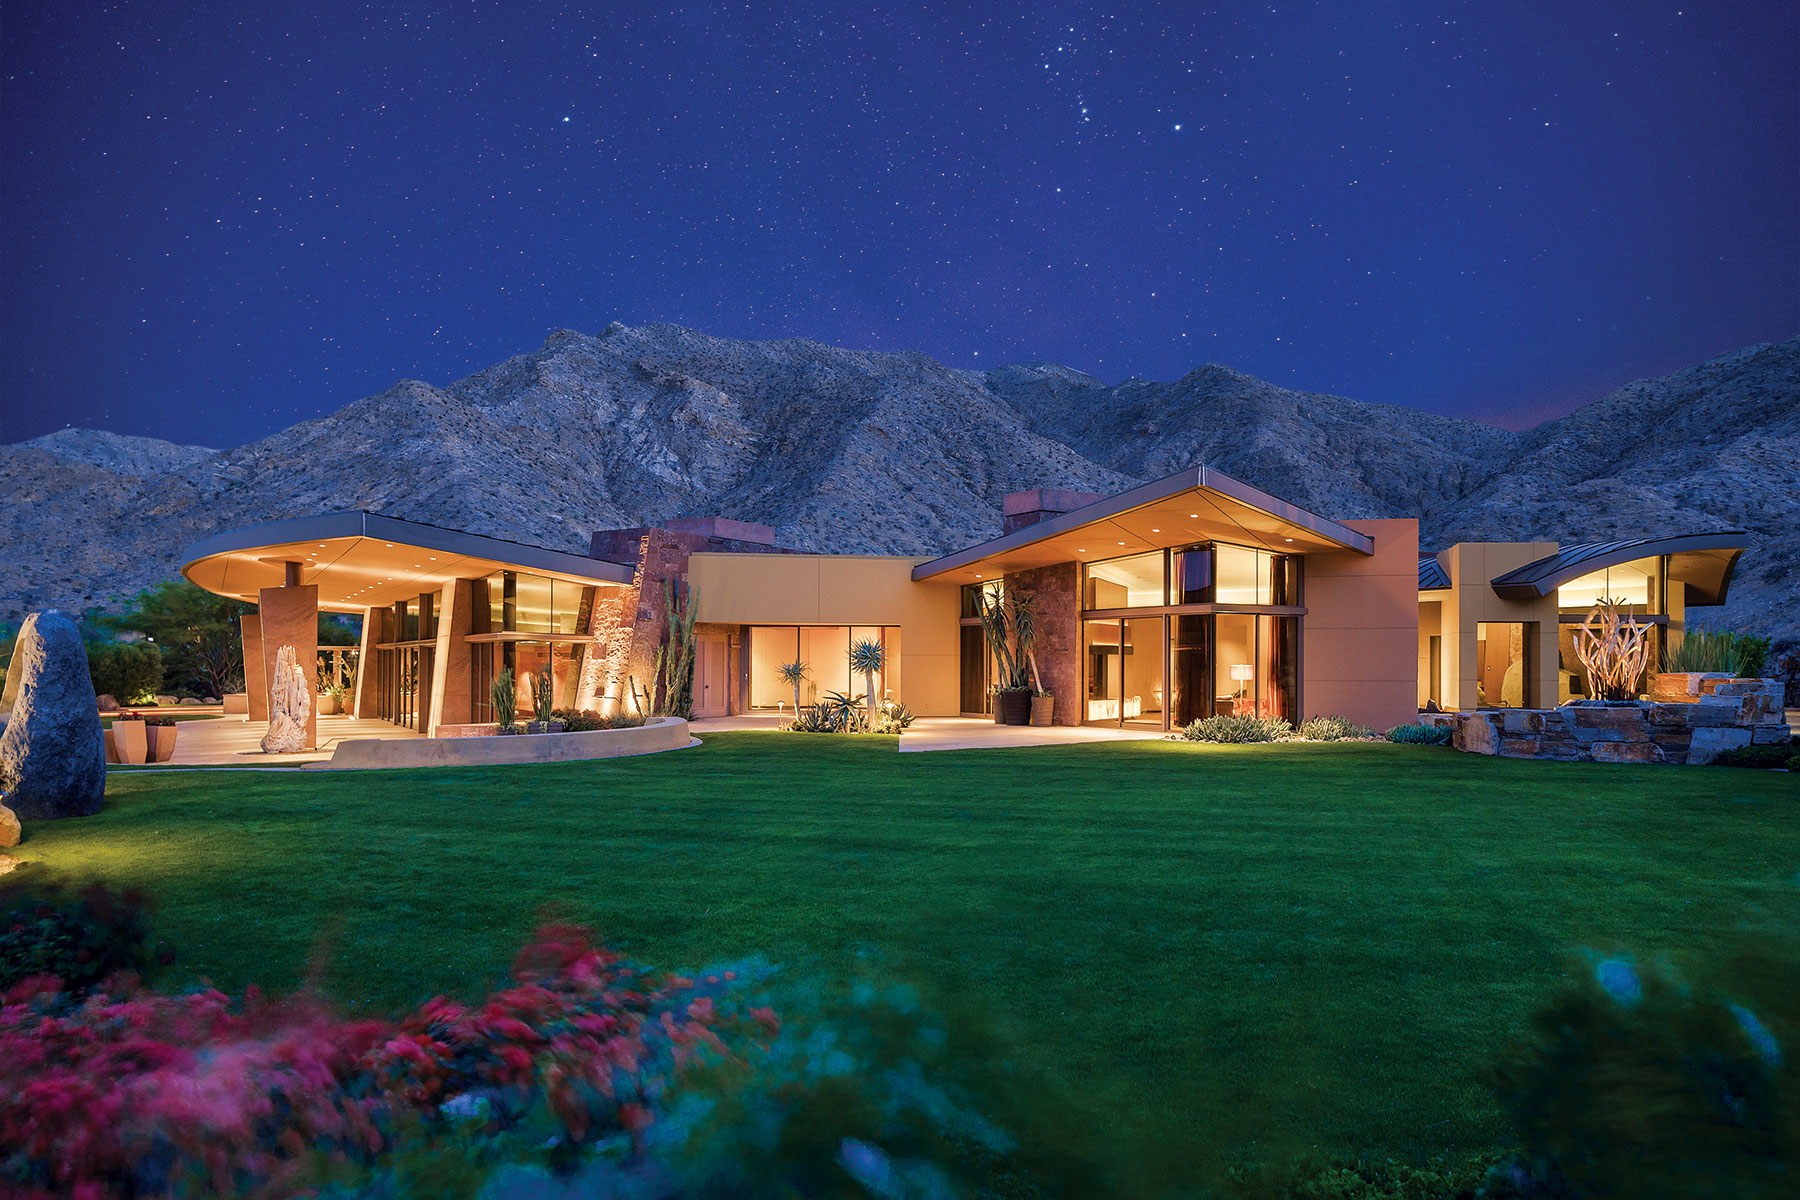 Single Family Home for Sale at 38 Sky Ridge Rancho Mirage, California, 92270 United States